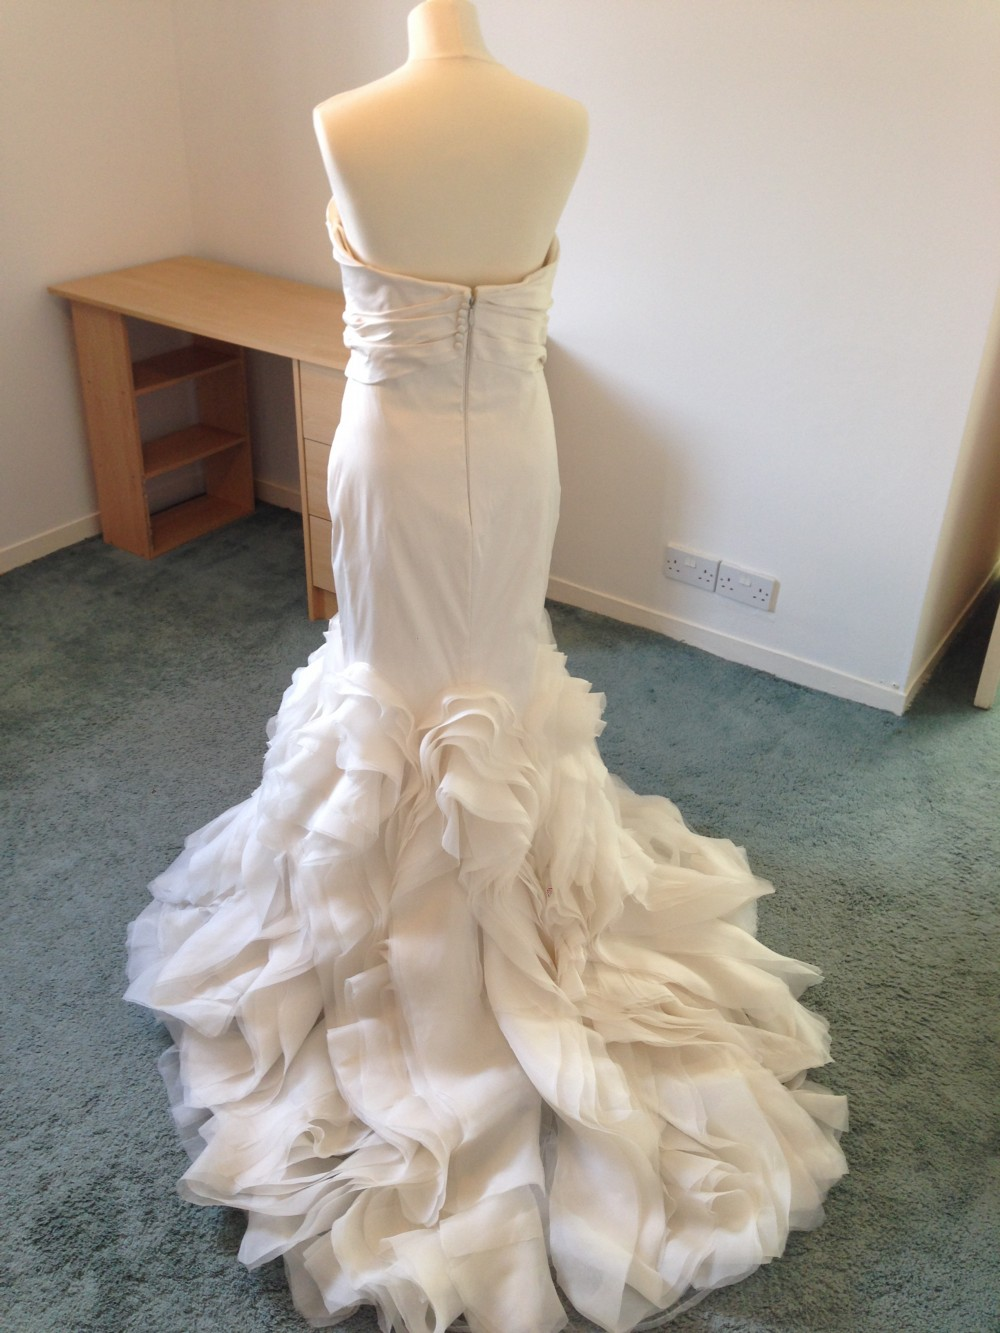 Vera wang ethel second hand wedding dress on sale 63 off for Second hand wedding dresses san diego